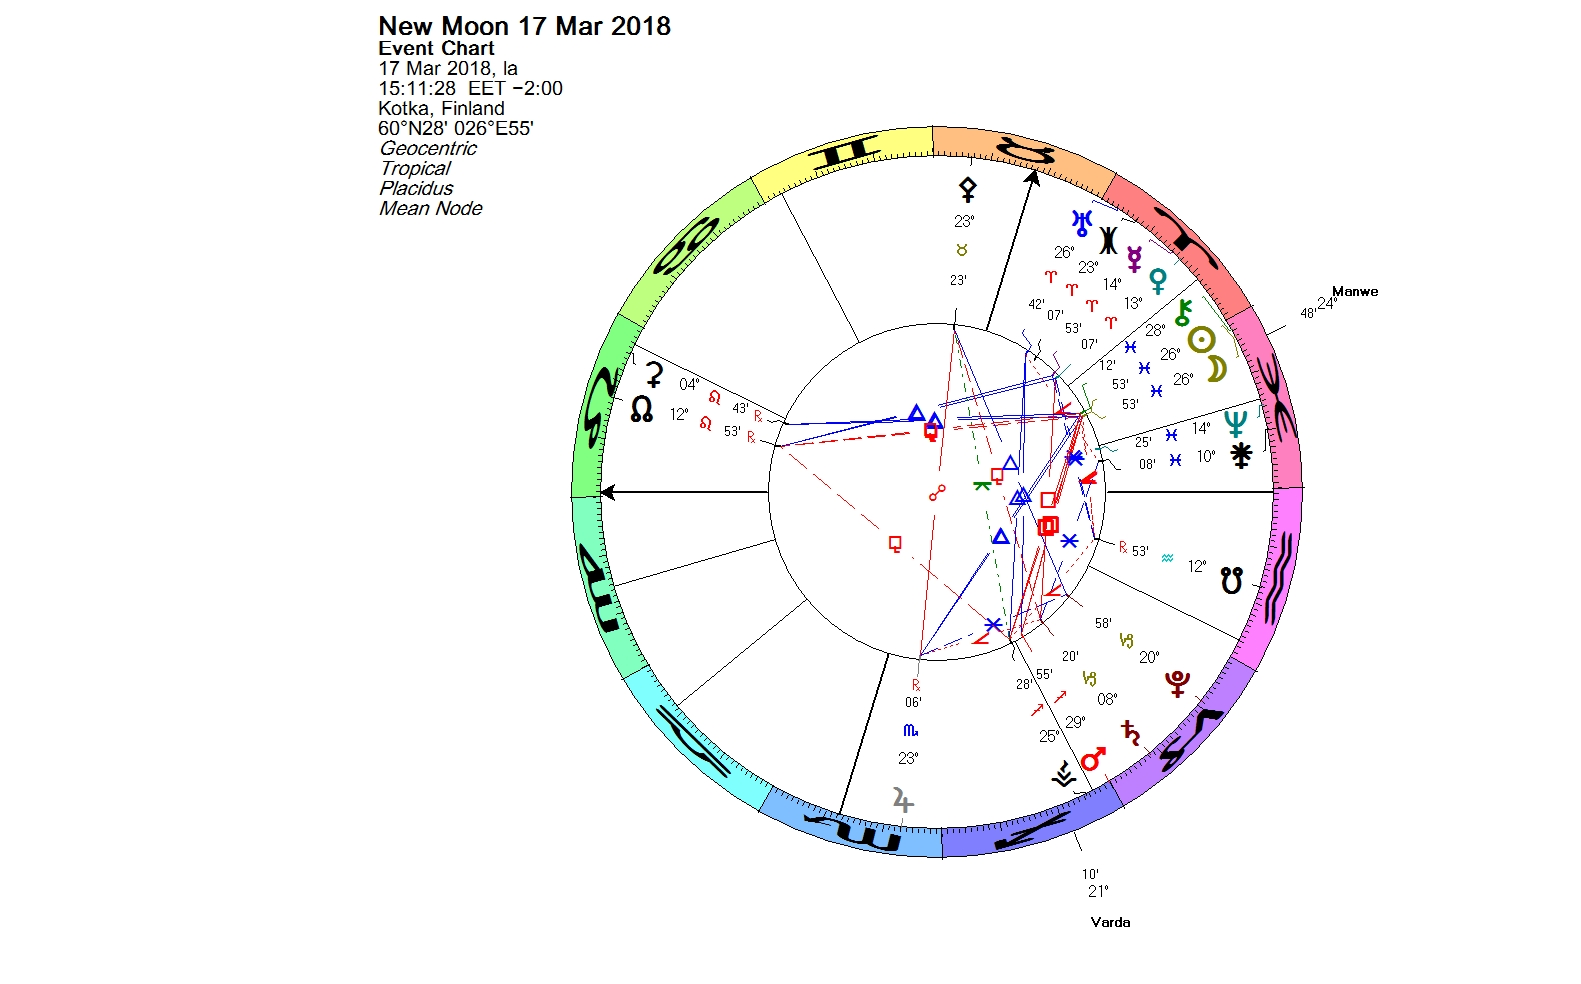 New Moon in Pisces — March 17, 2018, 13:11 UT